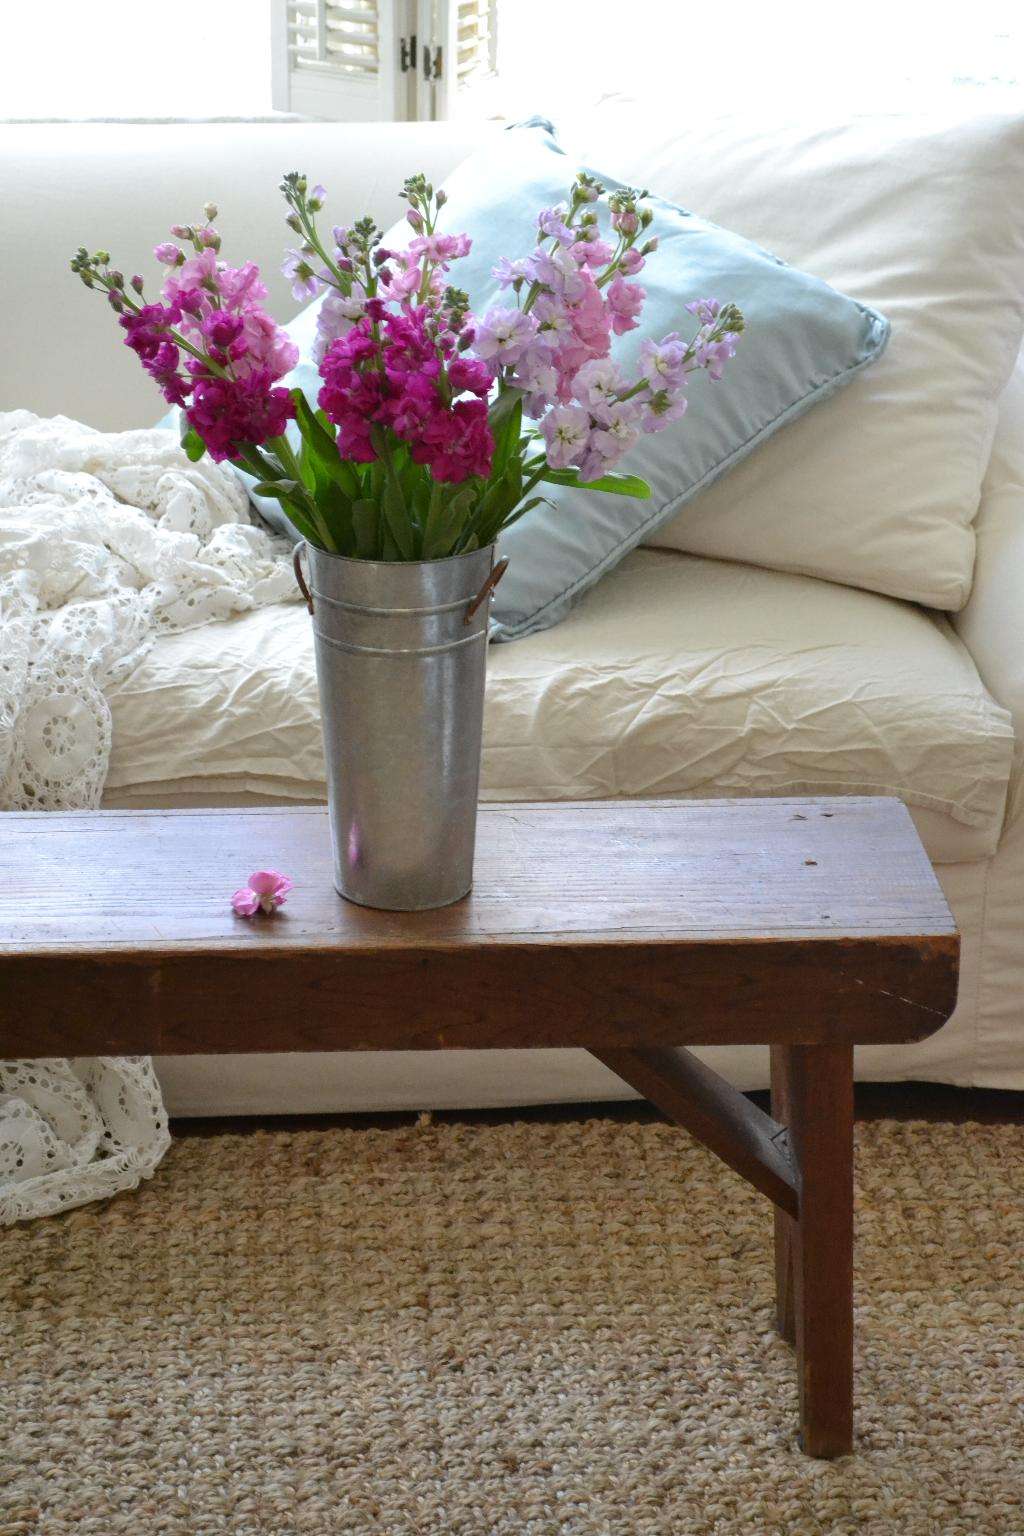 Cottage Fix - farm house bench and market flowers